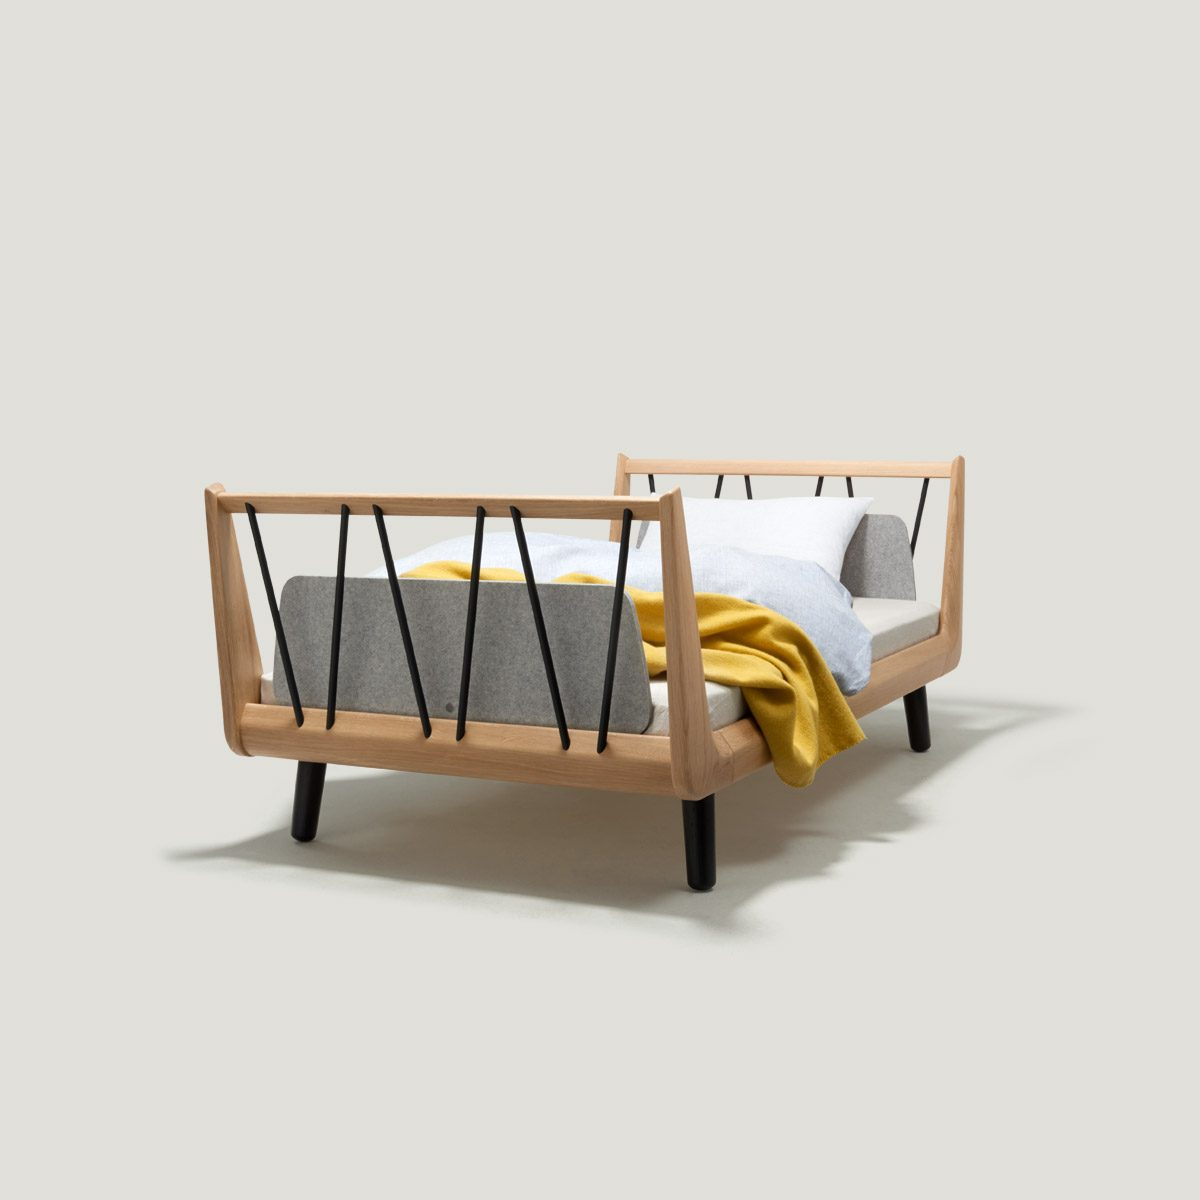 The VII classic junior bed – made from solid oak wood.